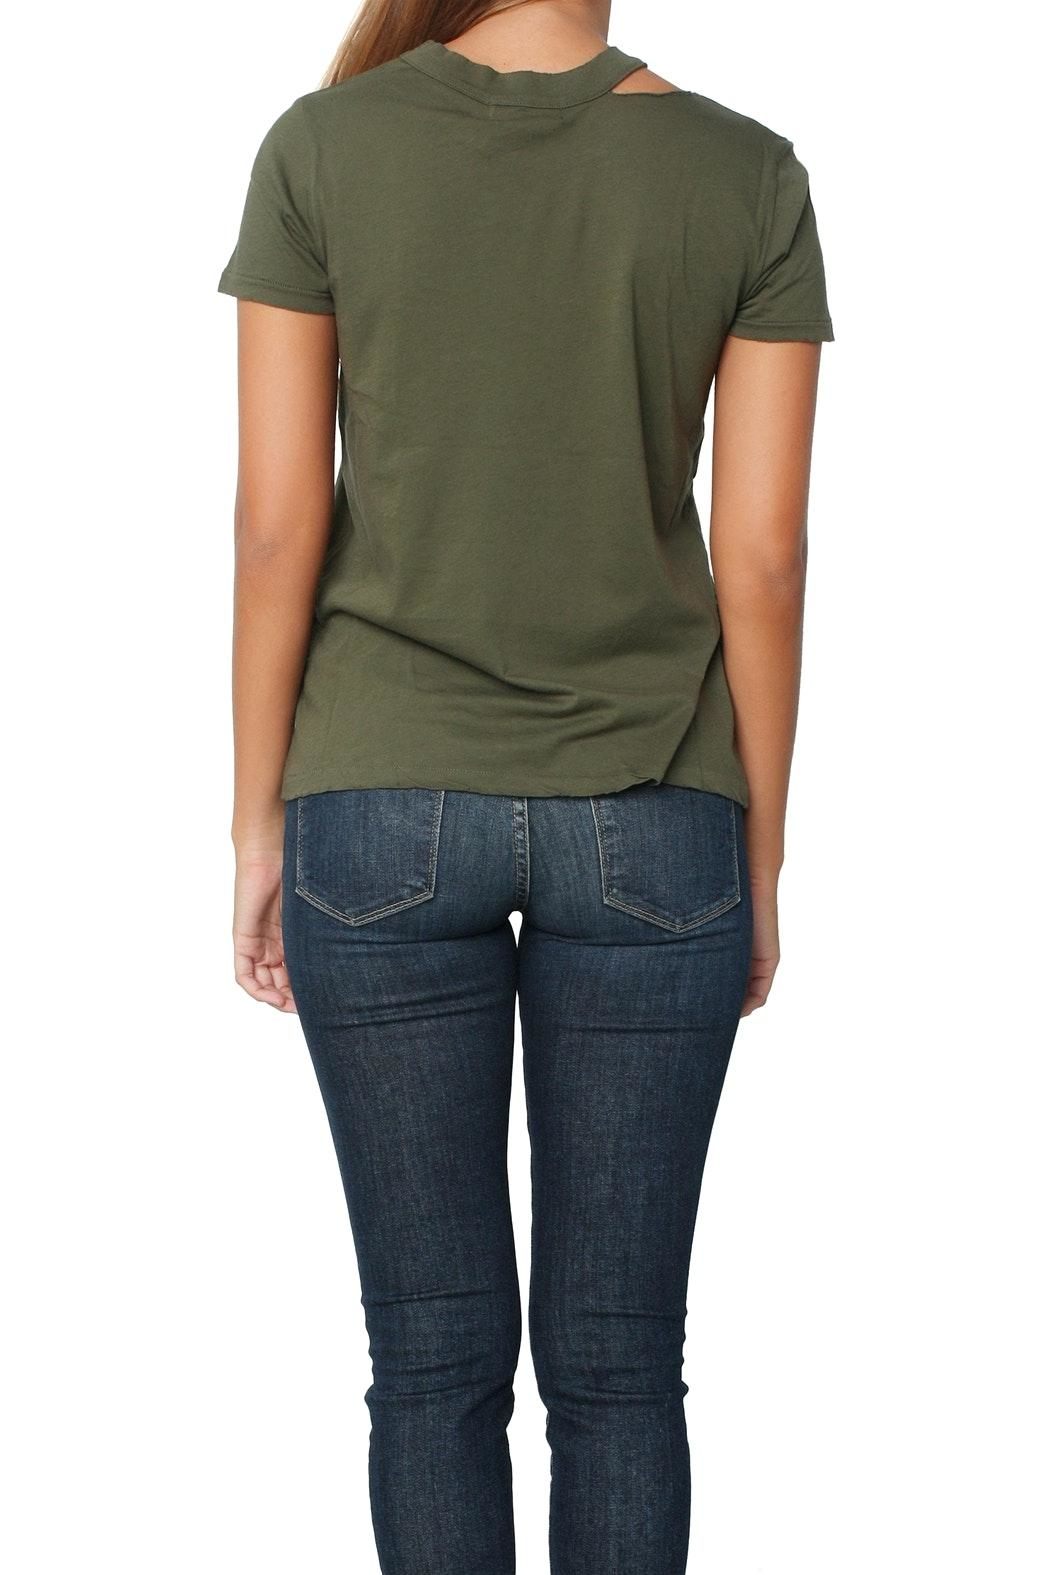 n:PHILANTHROPY Zander Tee Moss - Back Cropped Image